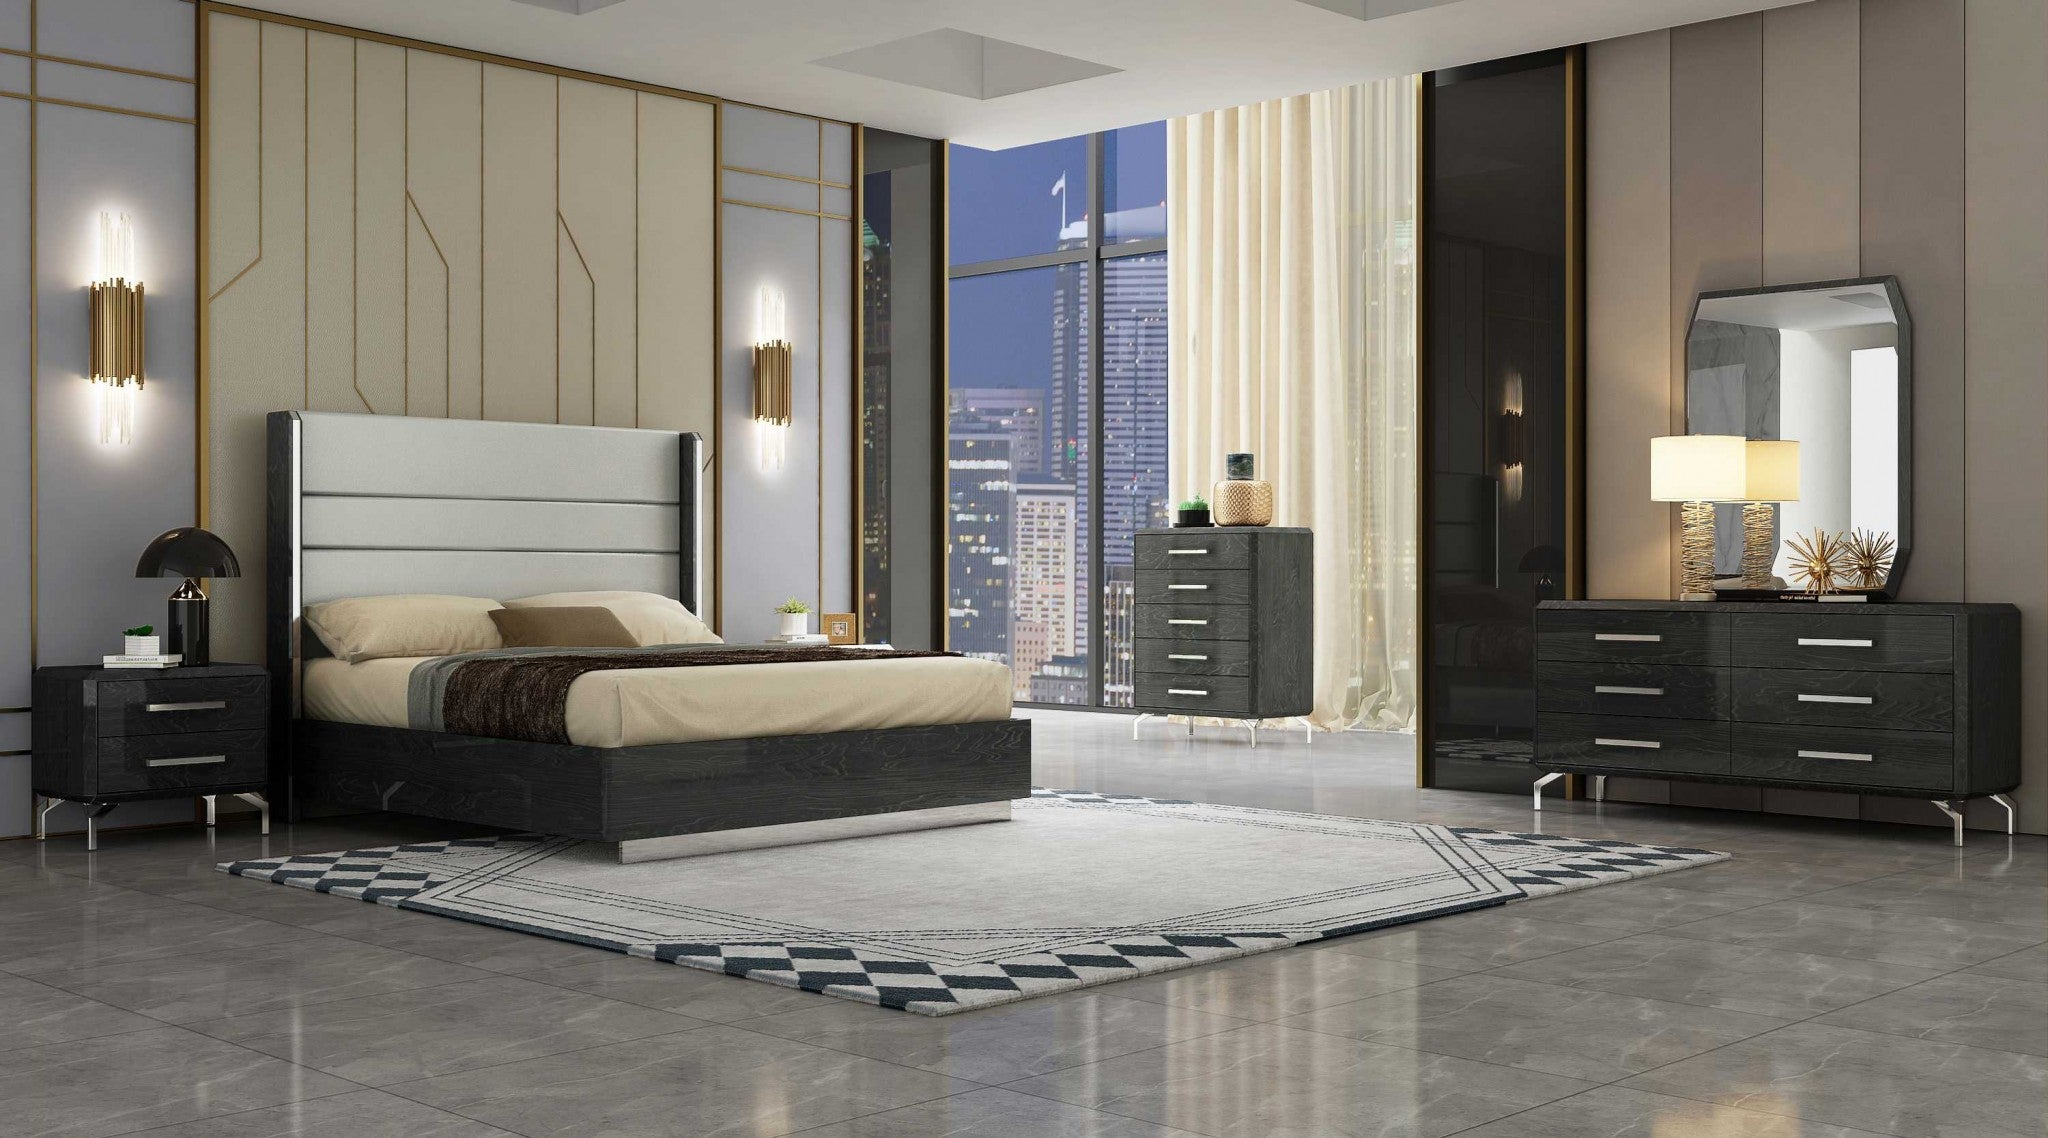 "76"" X 80"" X 60"" Gray Stainless Steel King Bed"